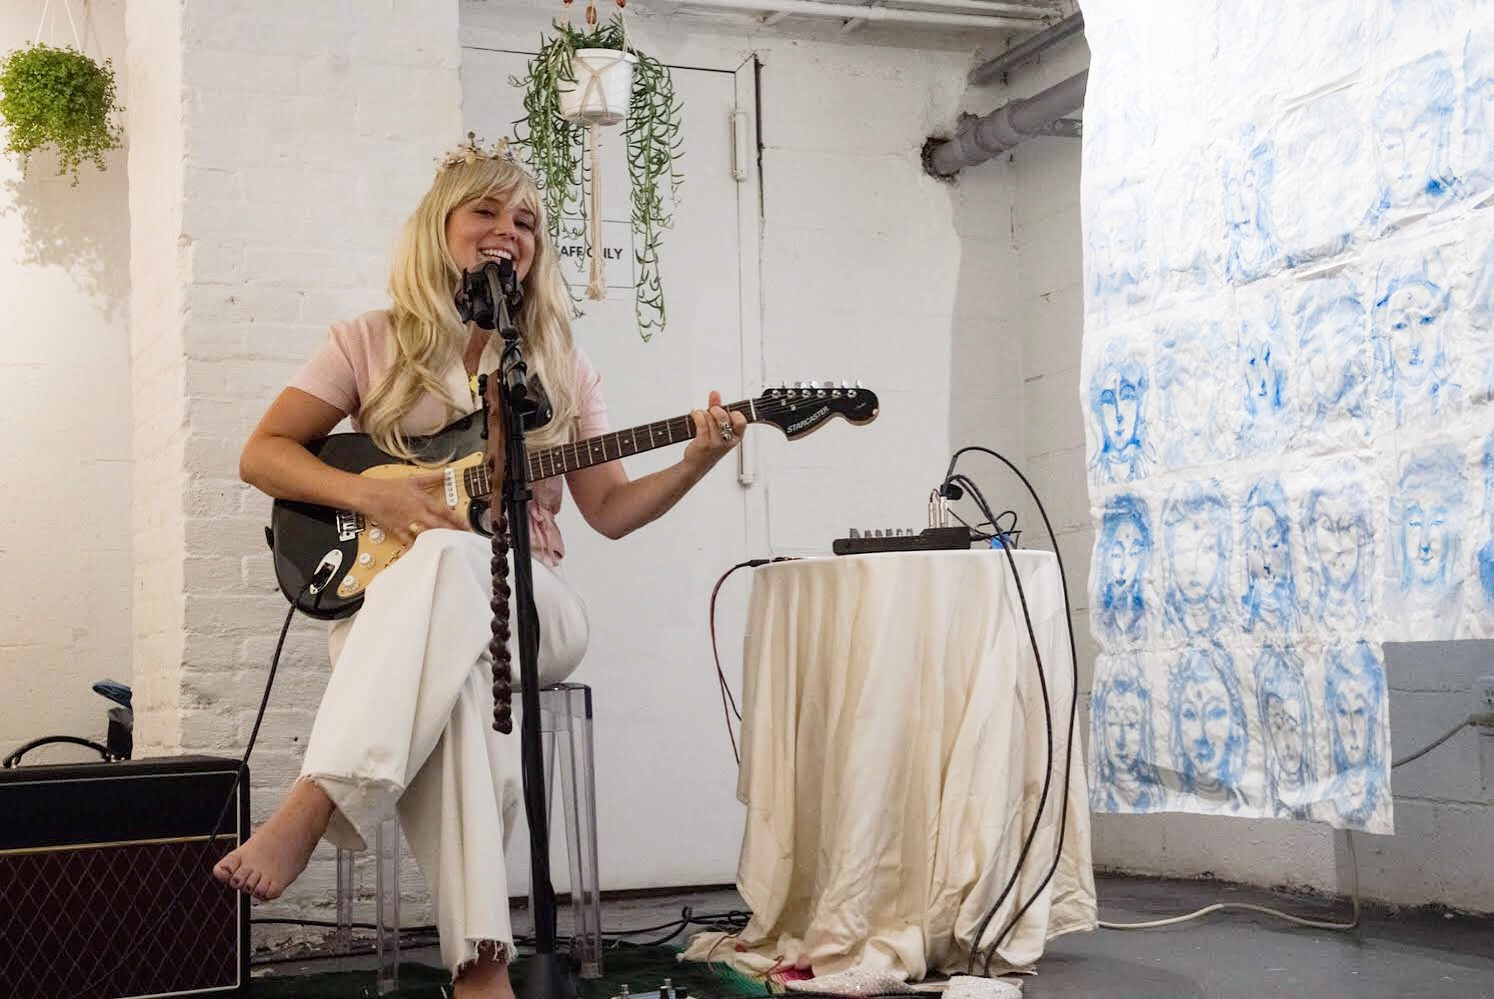 Courtney McKenna performing 'Sanctuary' at AG Gallery for 'Flower Offerings' on 9/9/18.